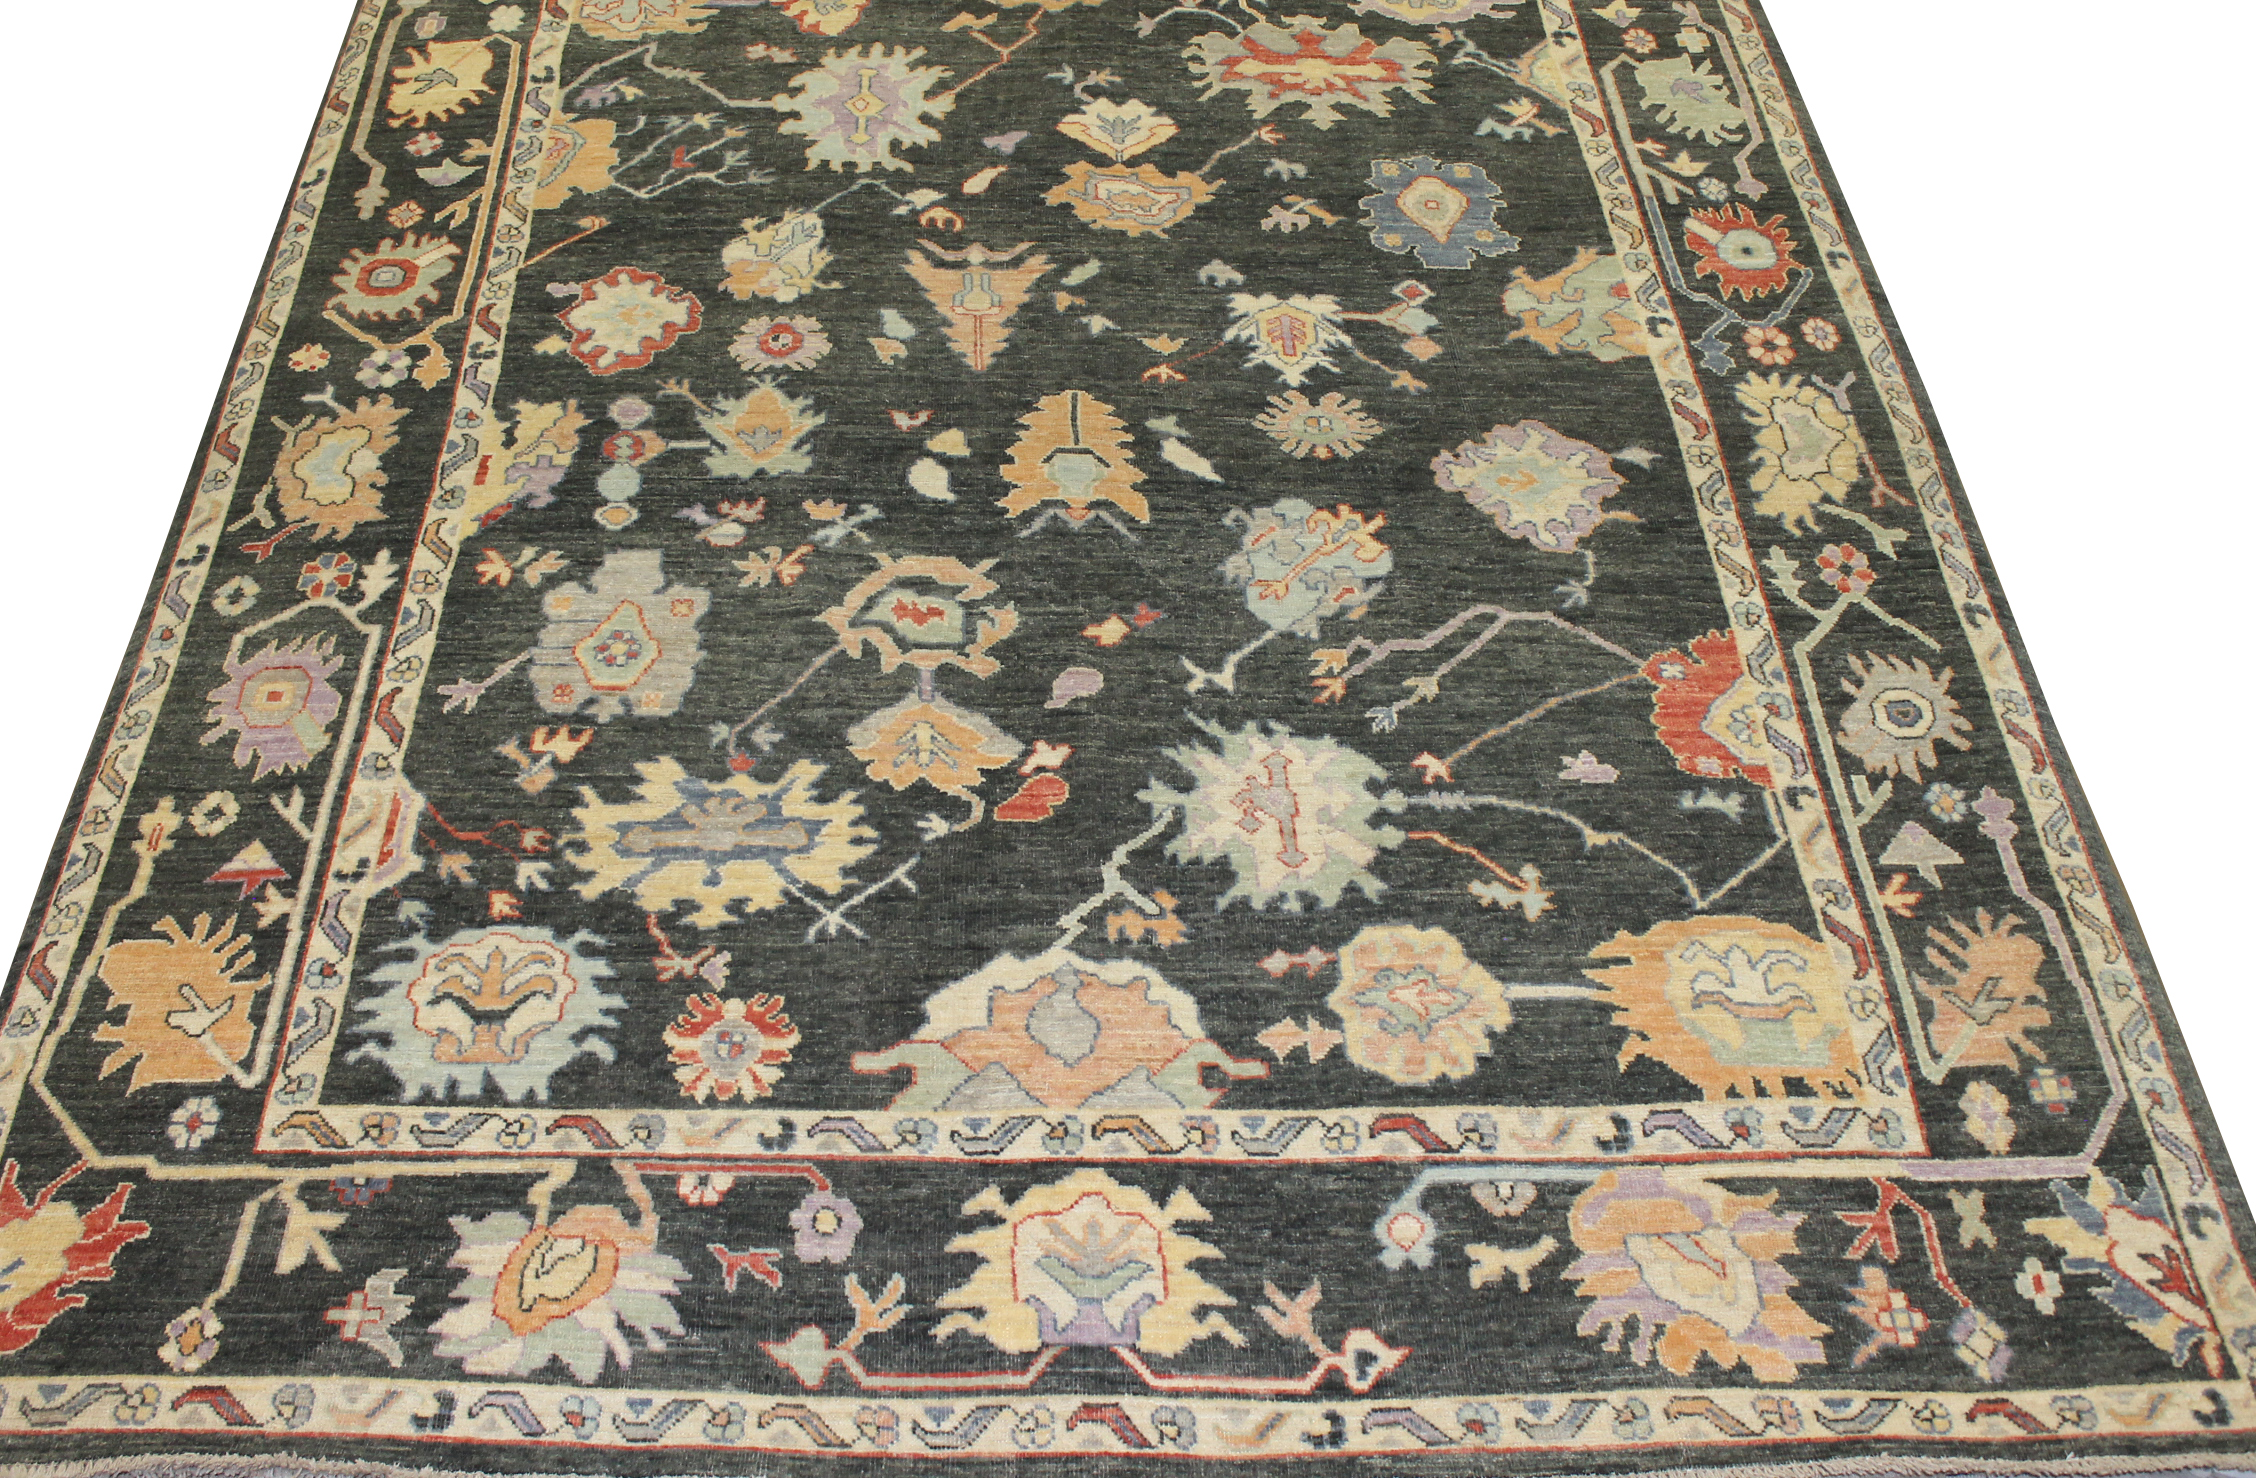 9x12 Oushak Hand Knotted Wool Area Rug - MR023705